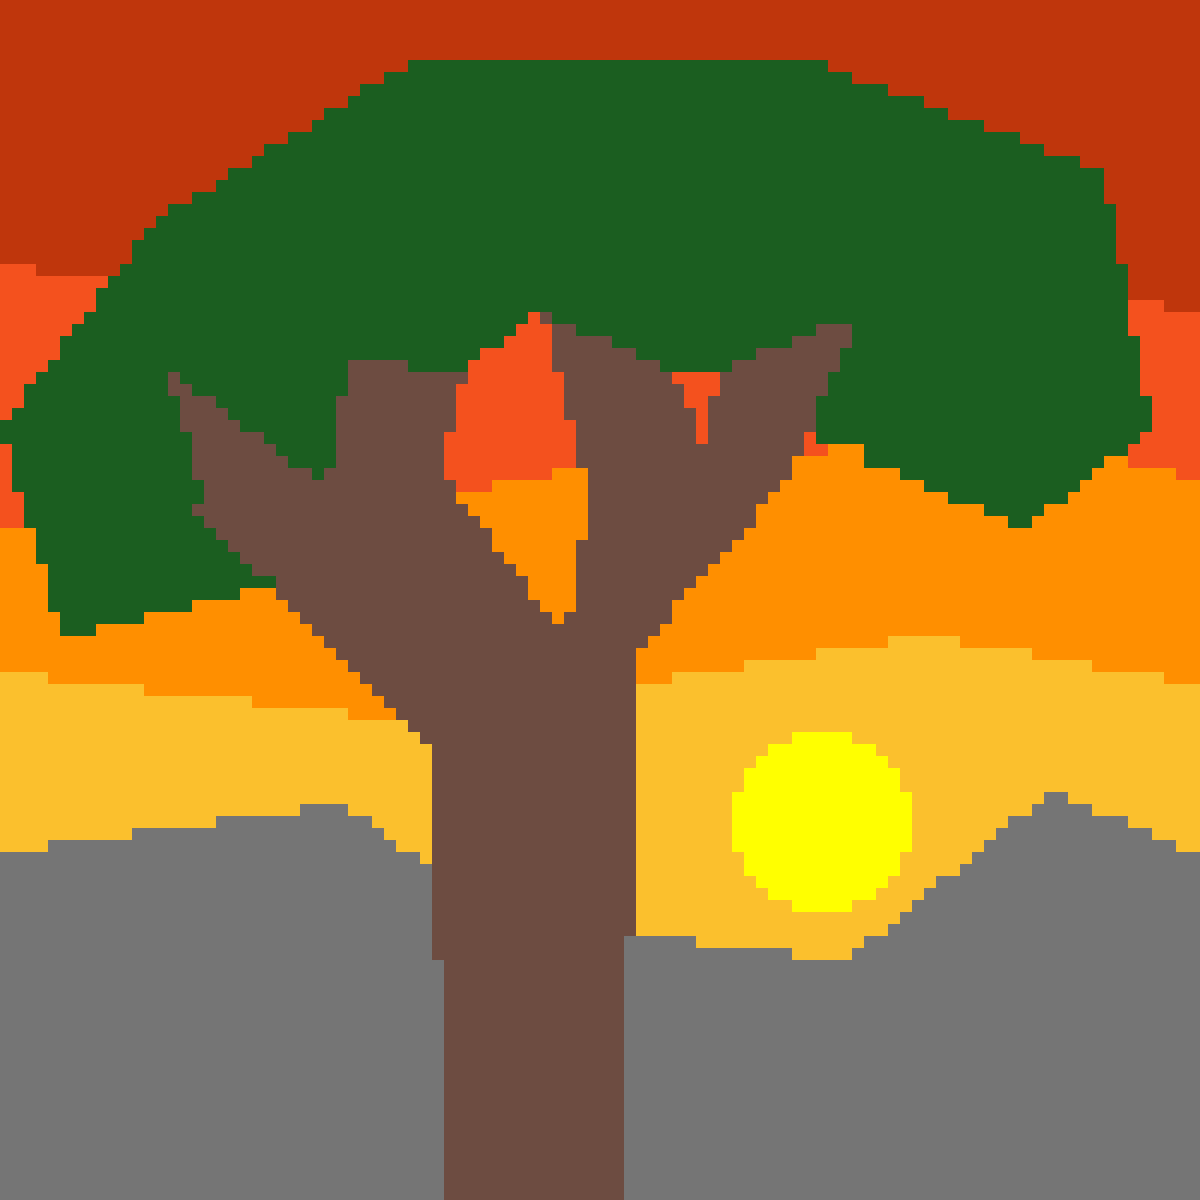 Sunset Tree by Bnus